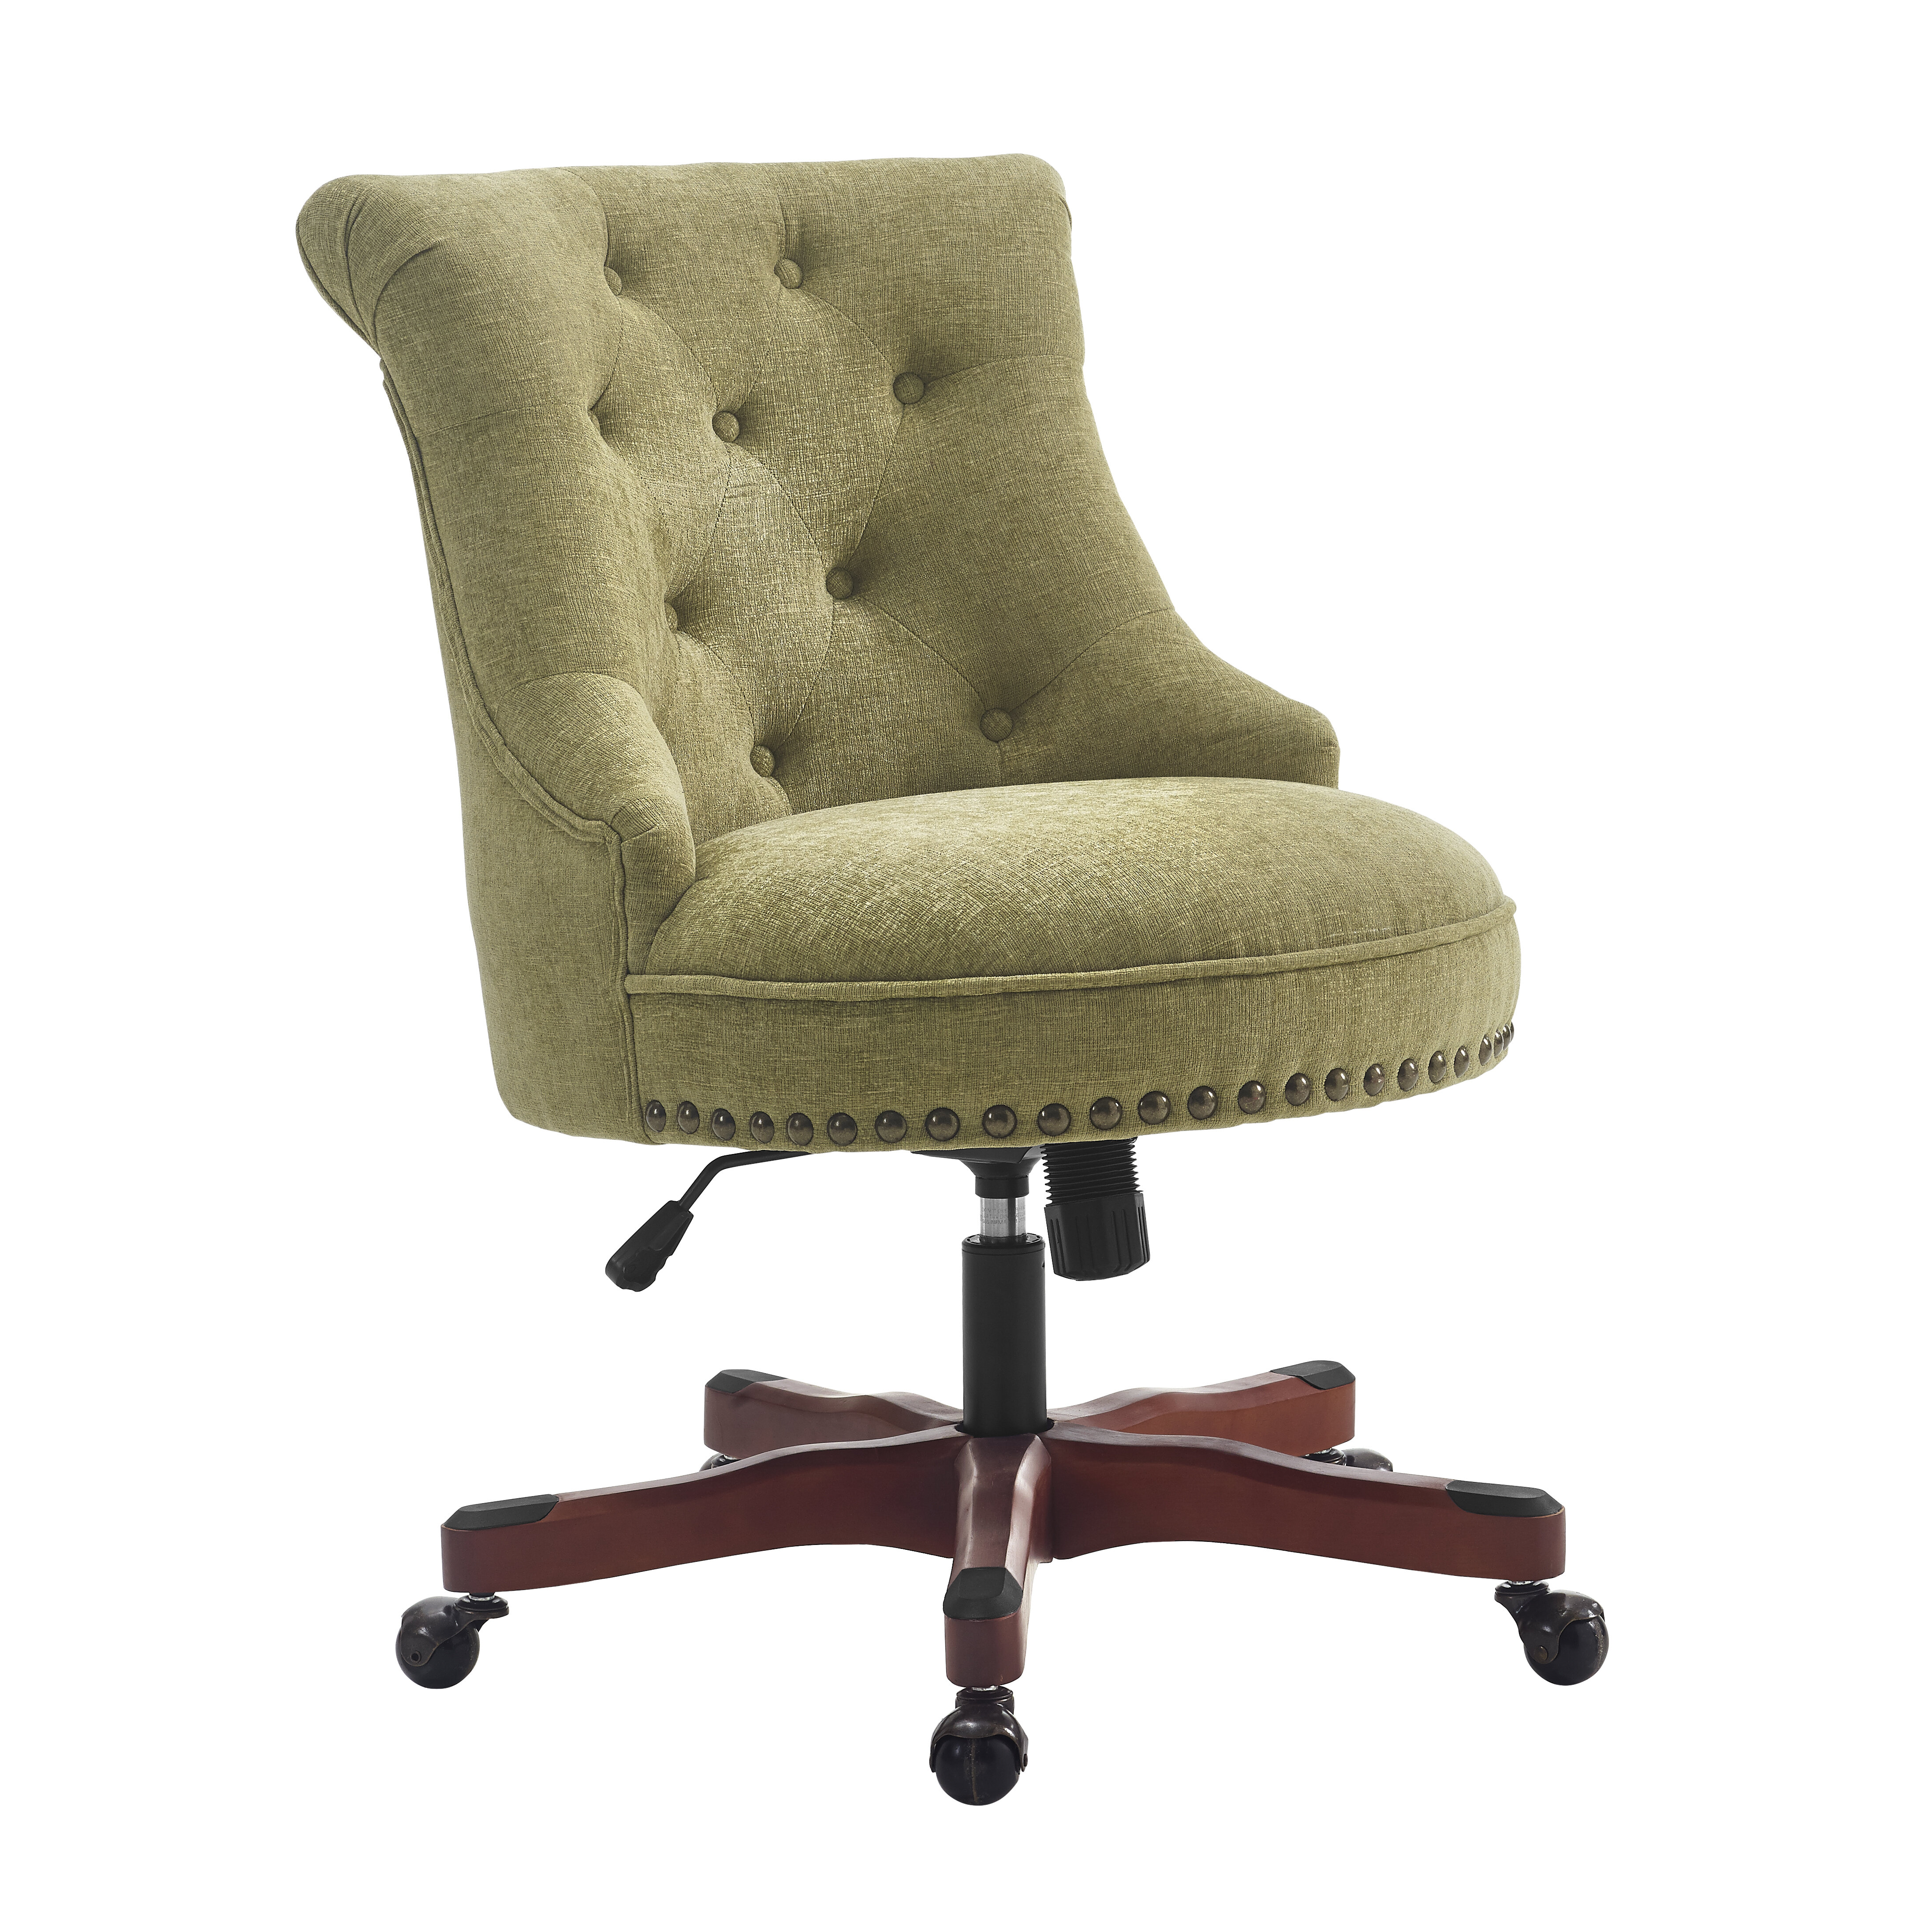 adjustable chair eu chairs office en leap ergonomic steelcase products